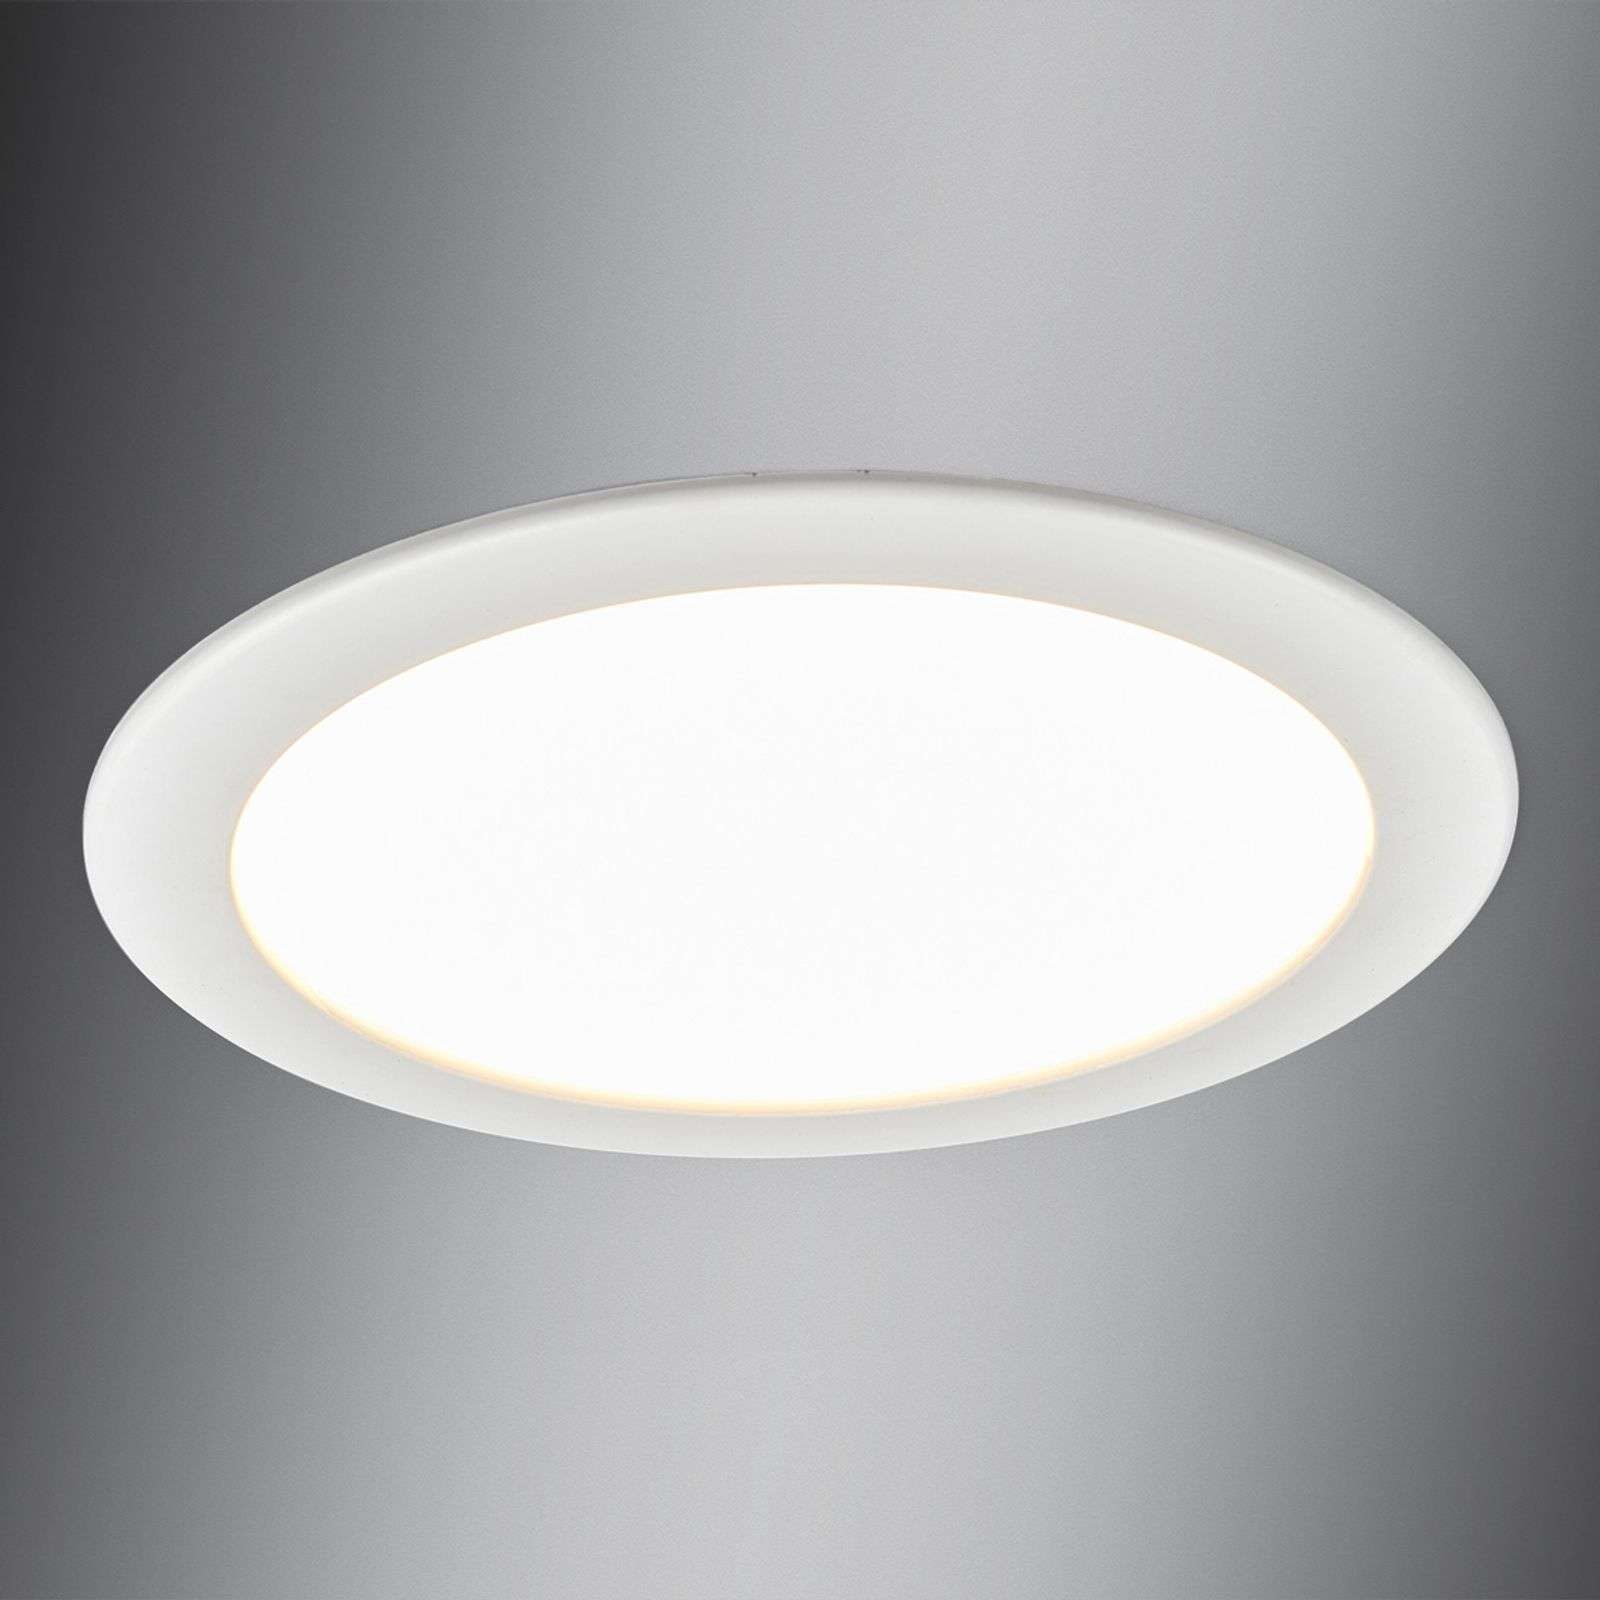 Downlight Editha per bagni, pannello LED 18W